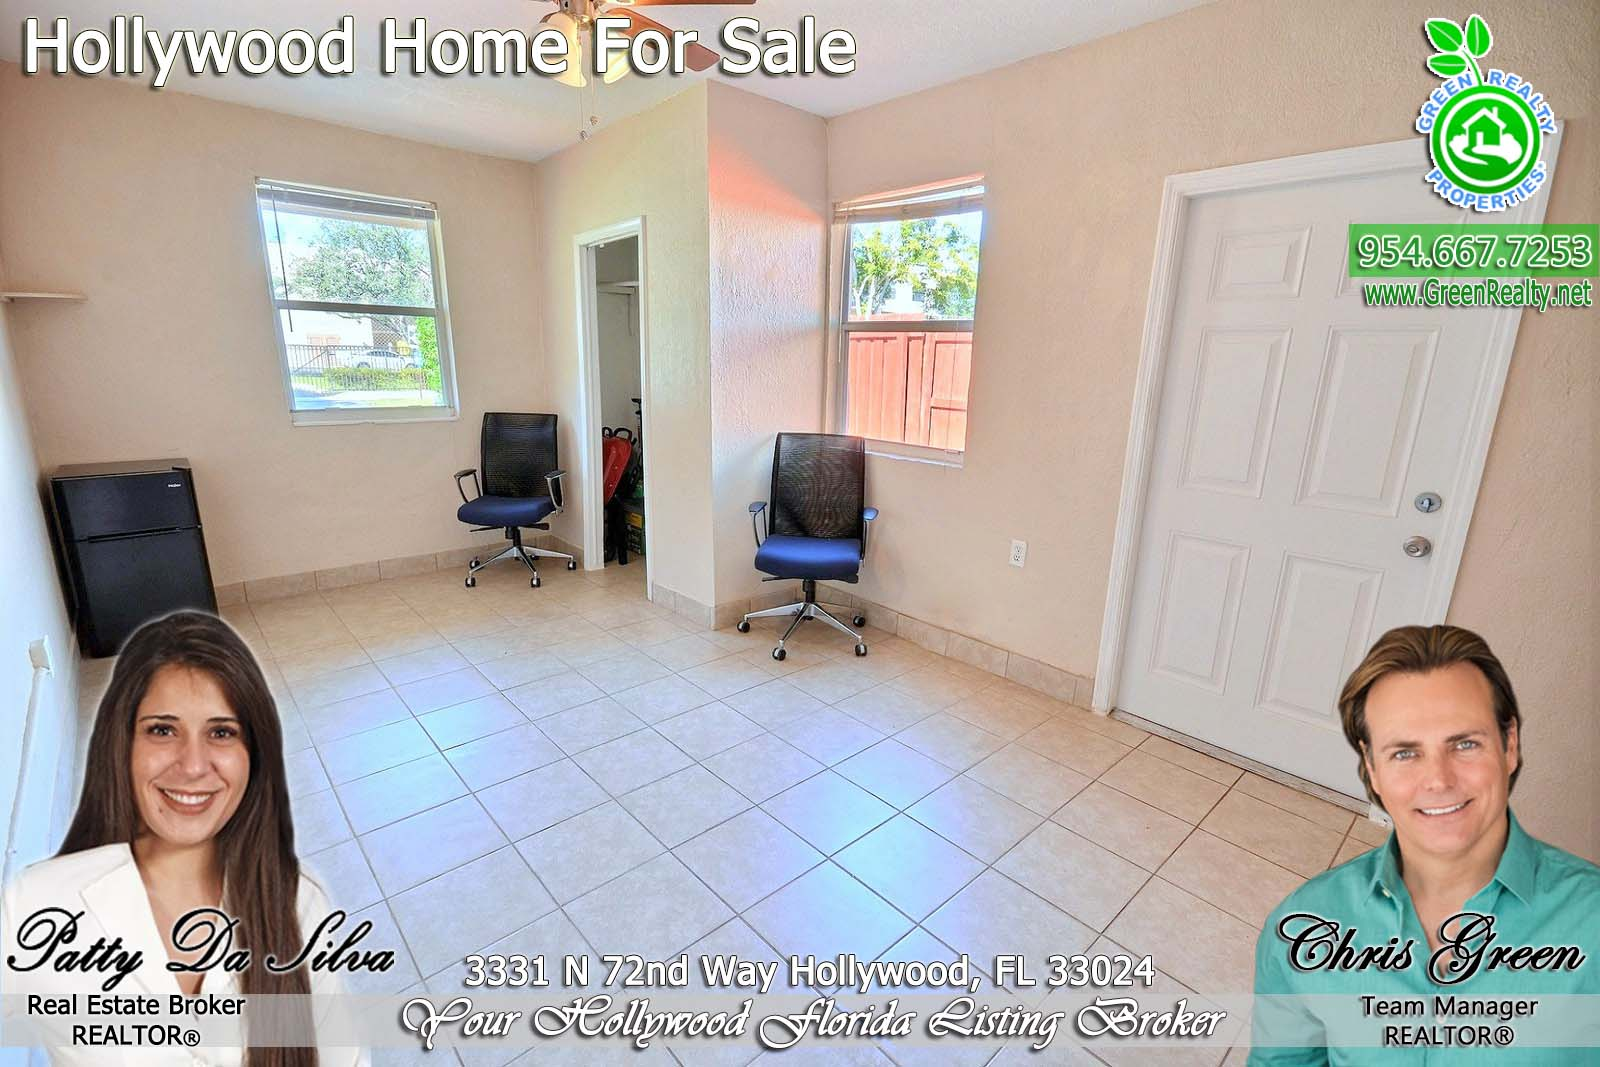 10 Hollywood Florida Homes For Sale (4)